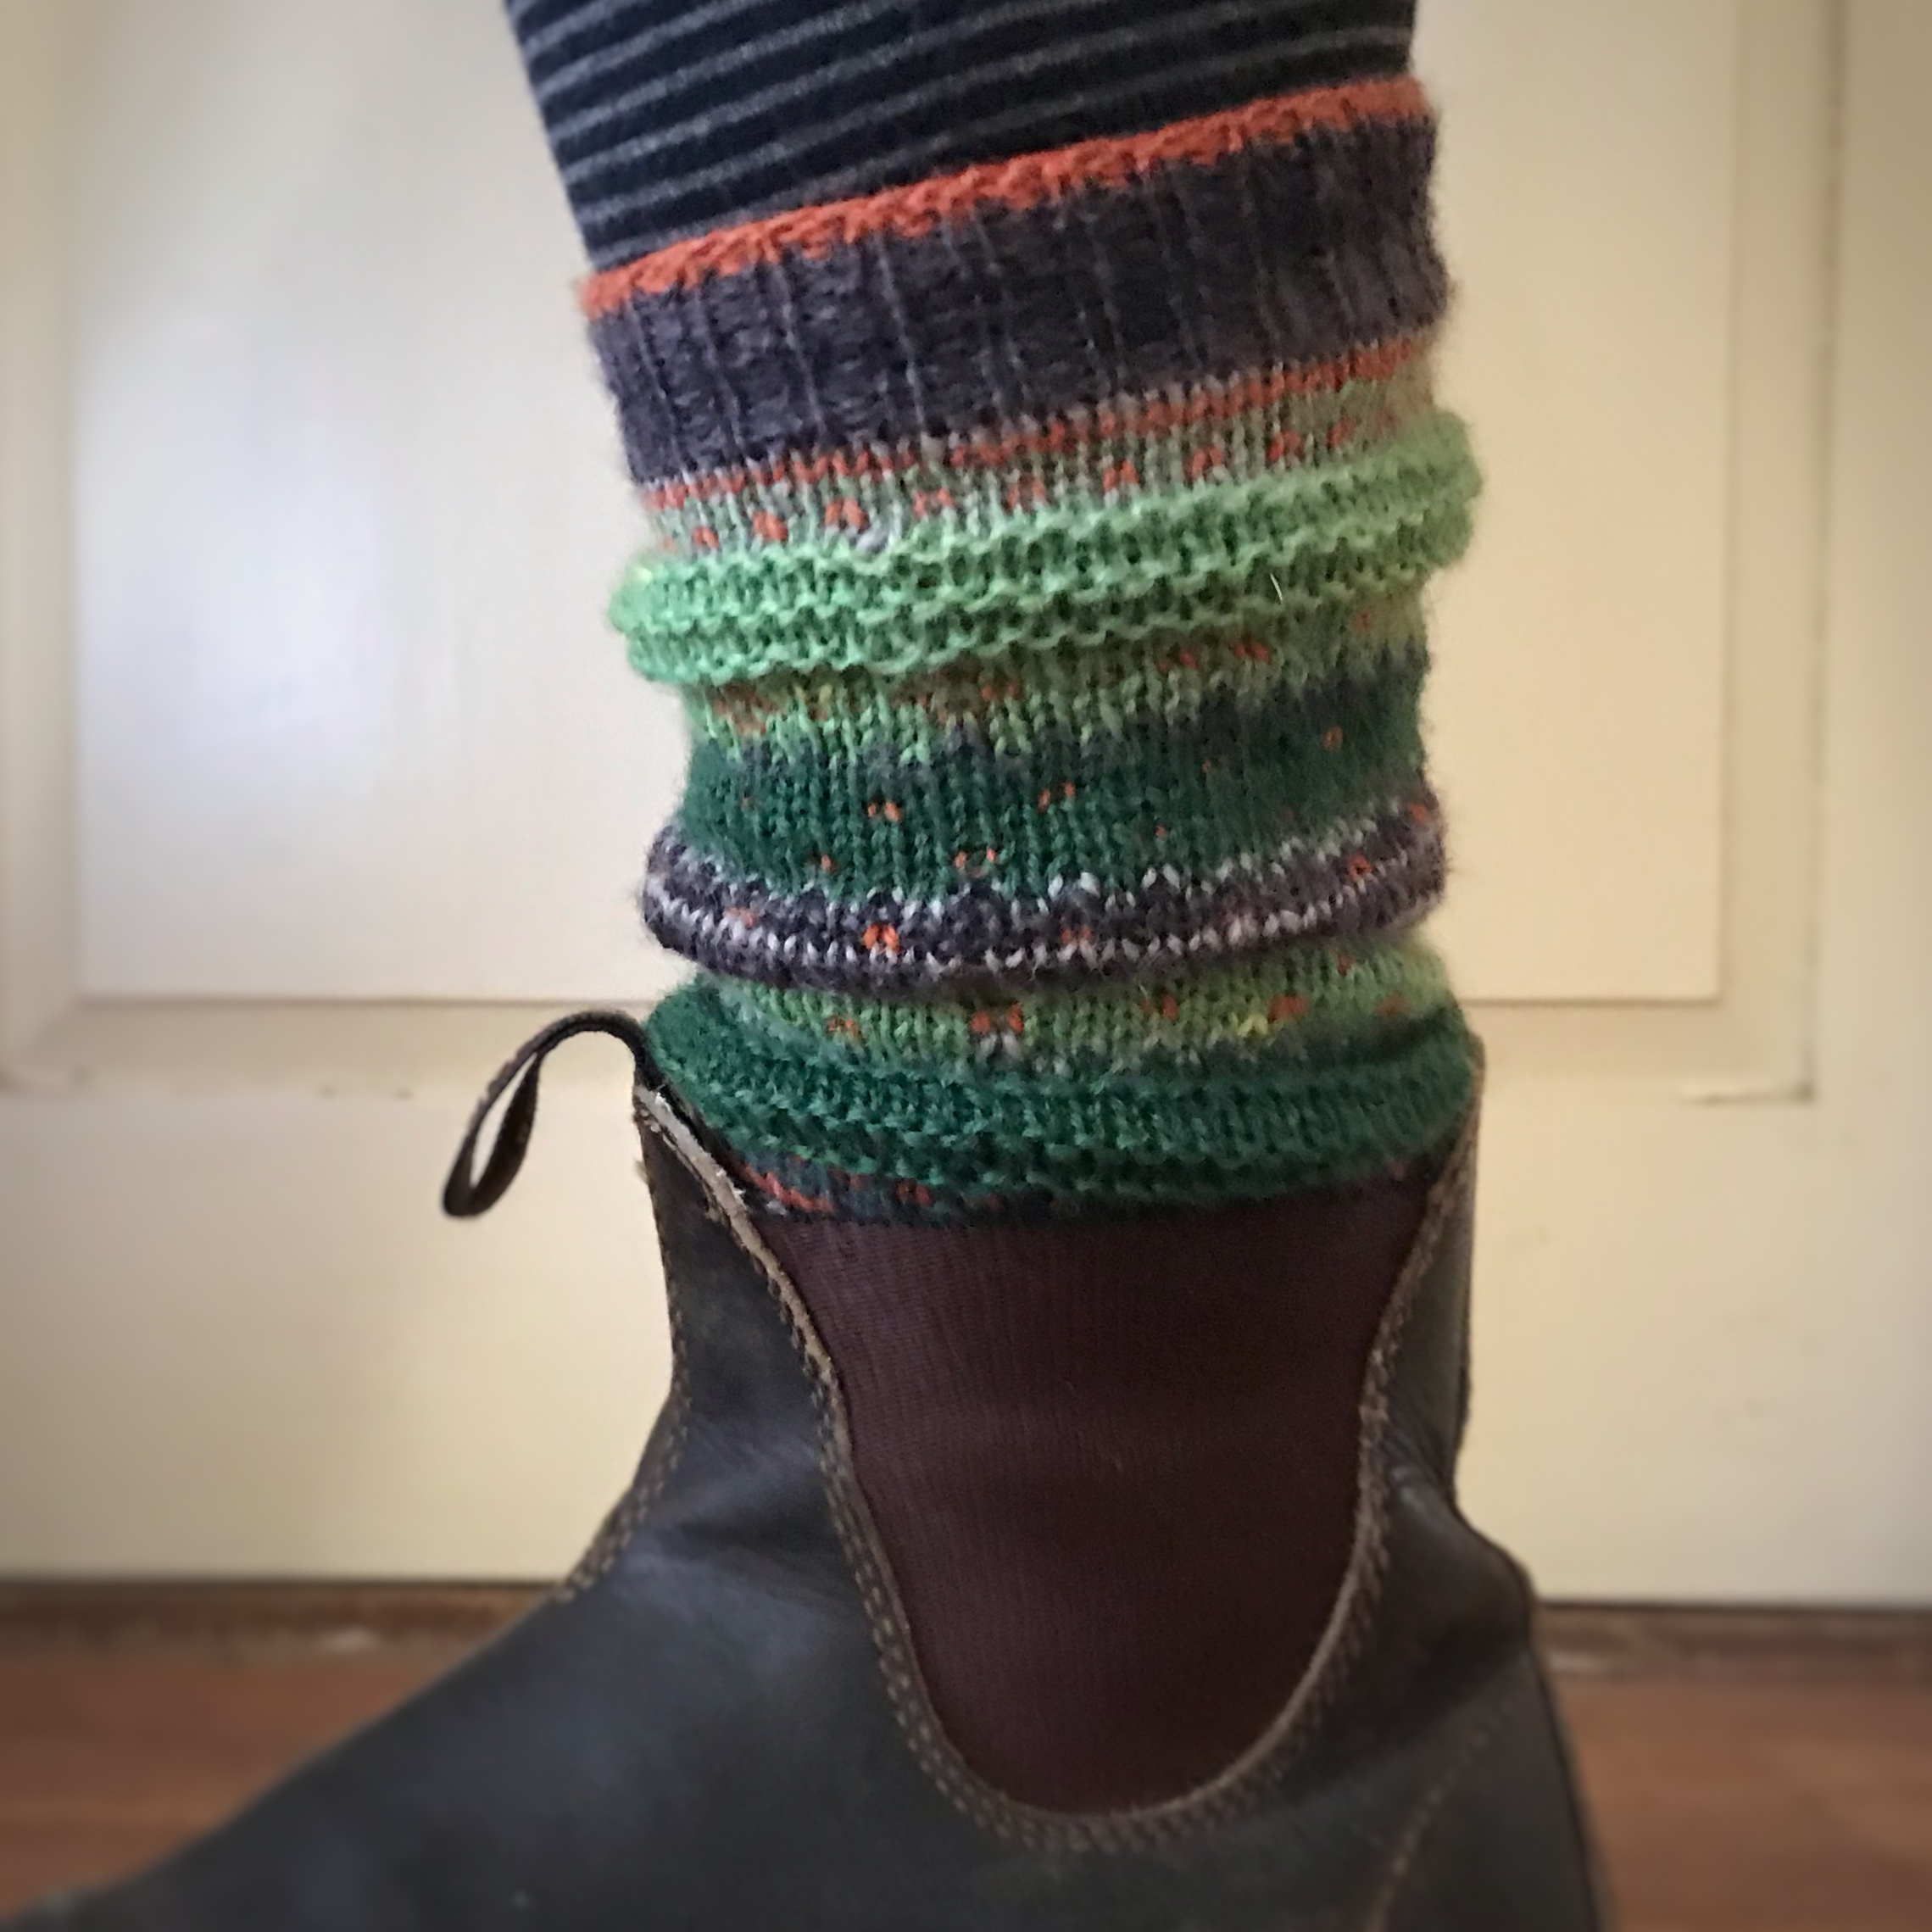 Toppers for Short Boots - Land colorway (these would also make good arm warmers).